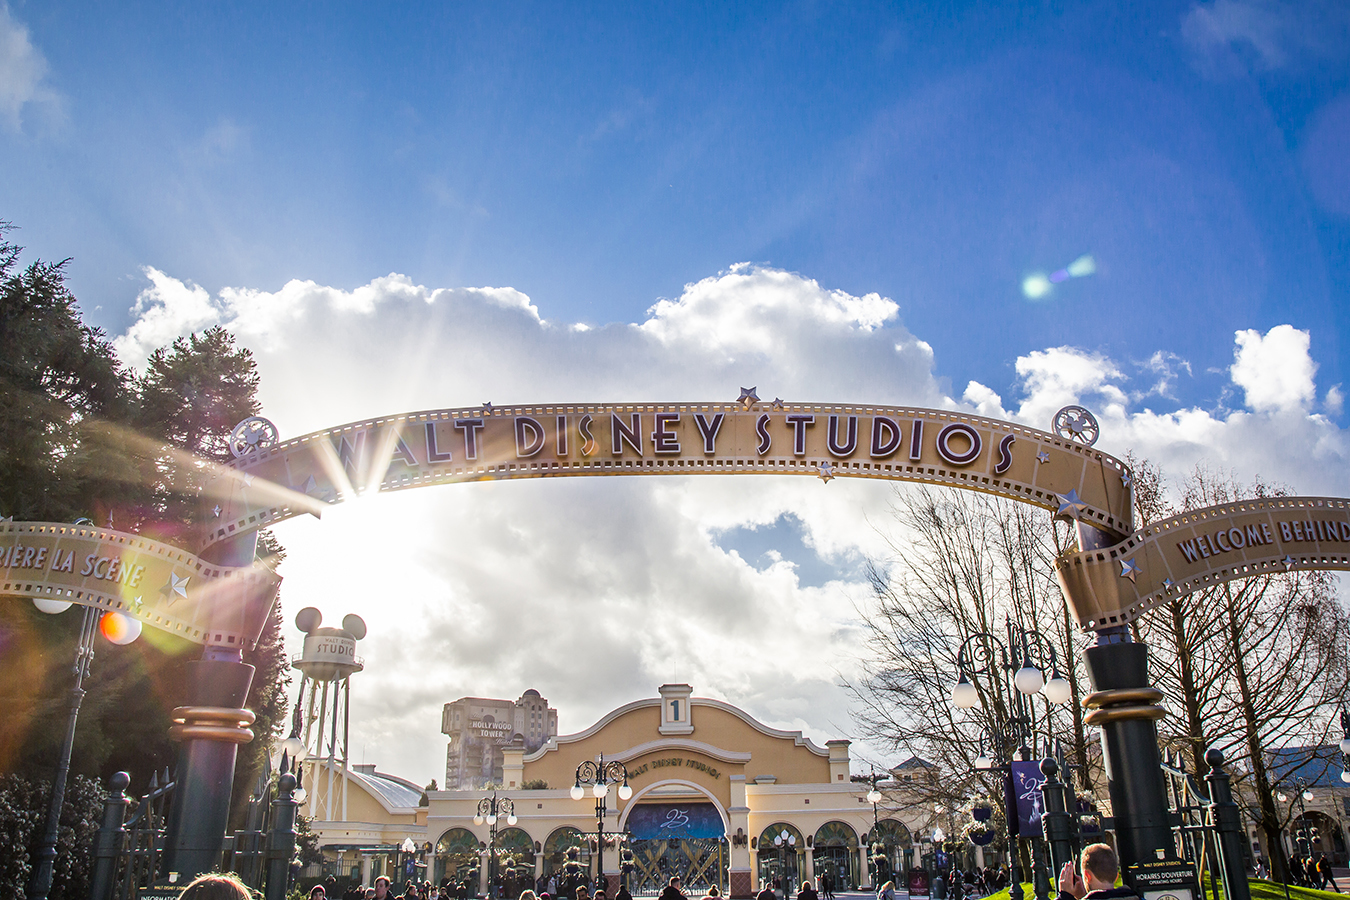 Walt Disney Studios - Time Out Disneyland Paris and Mastercard Creative Solutions